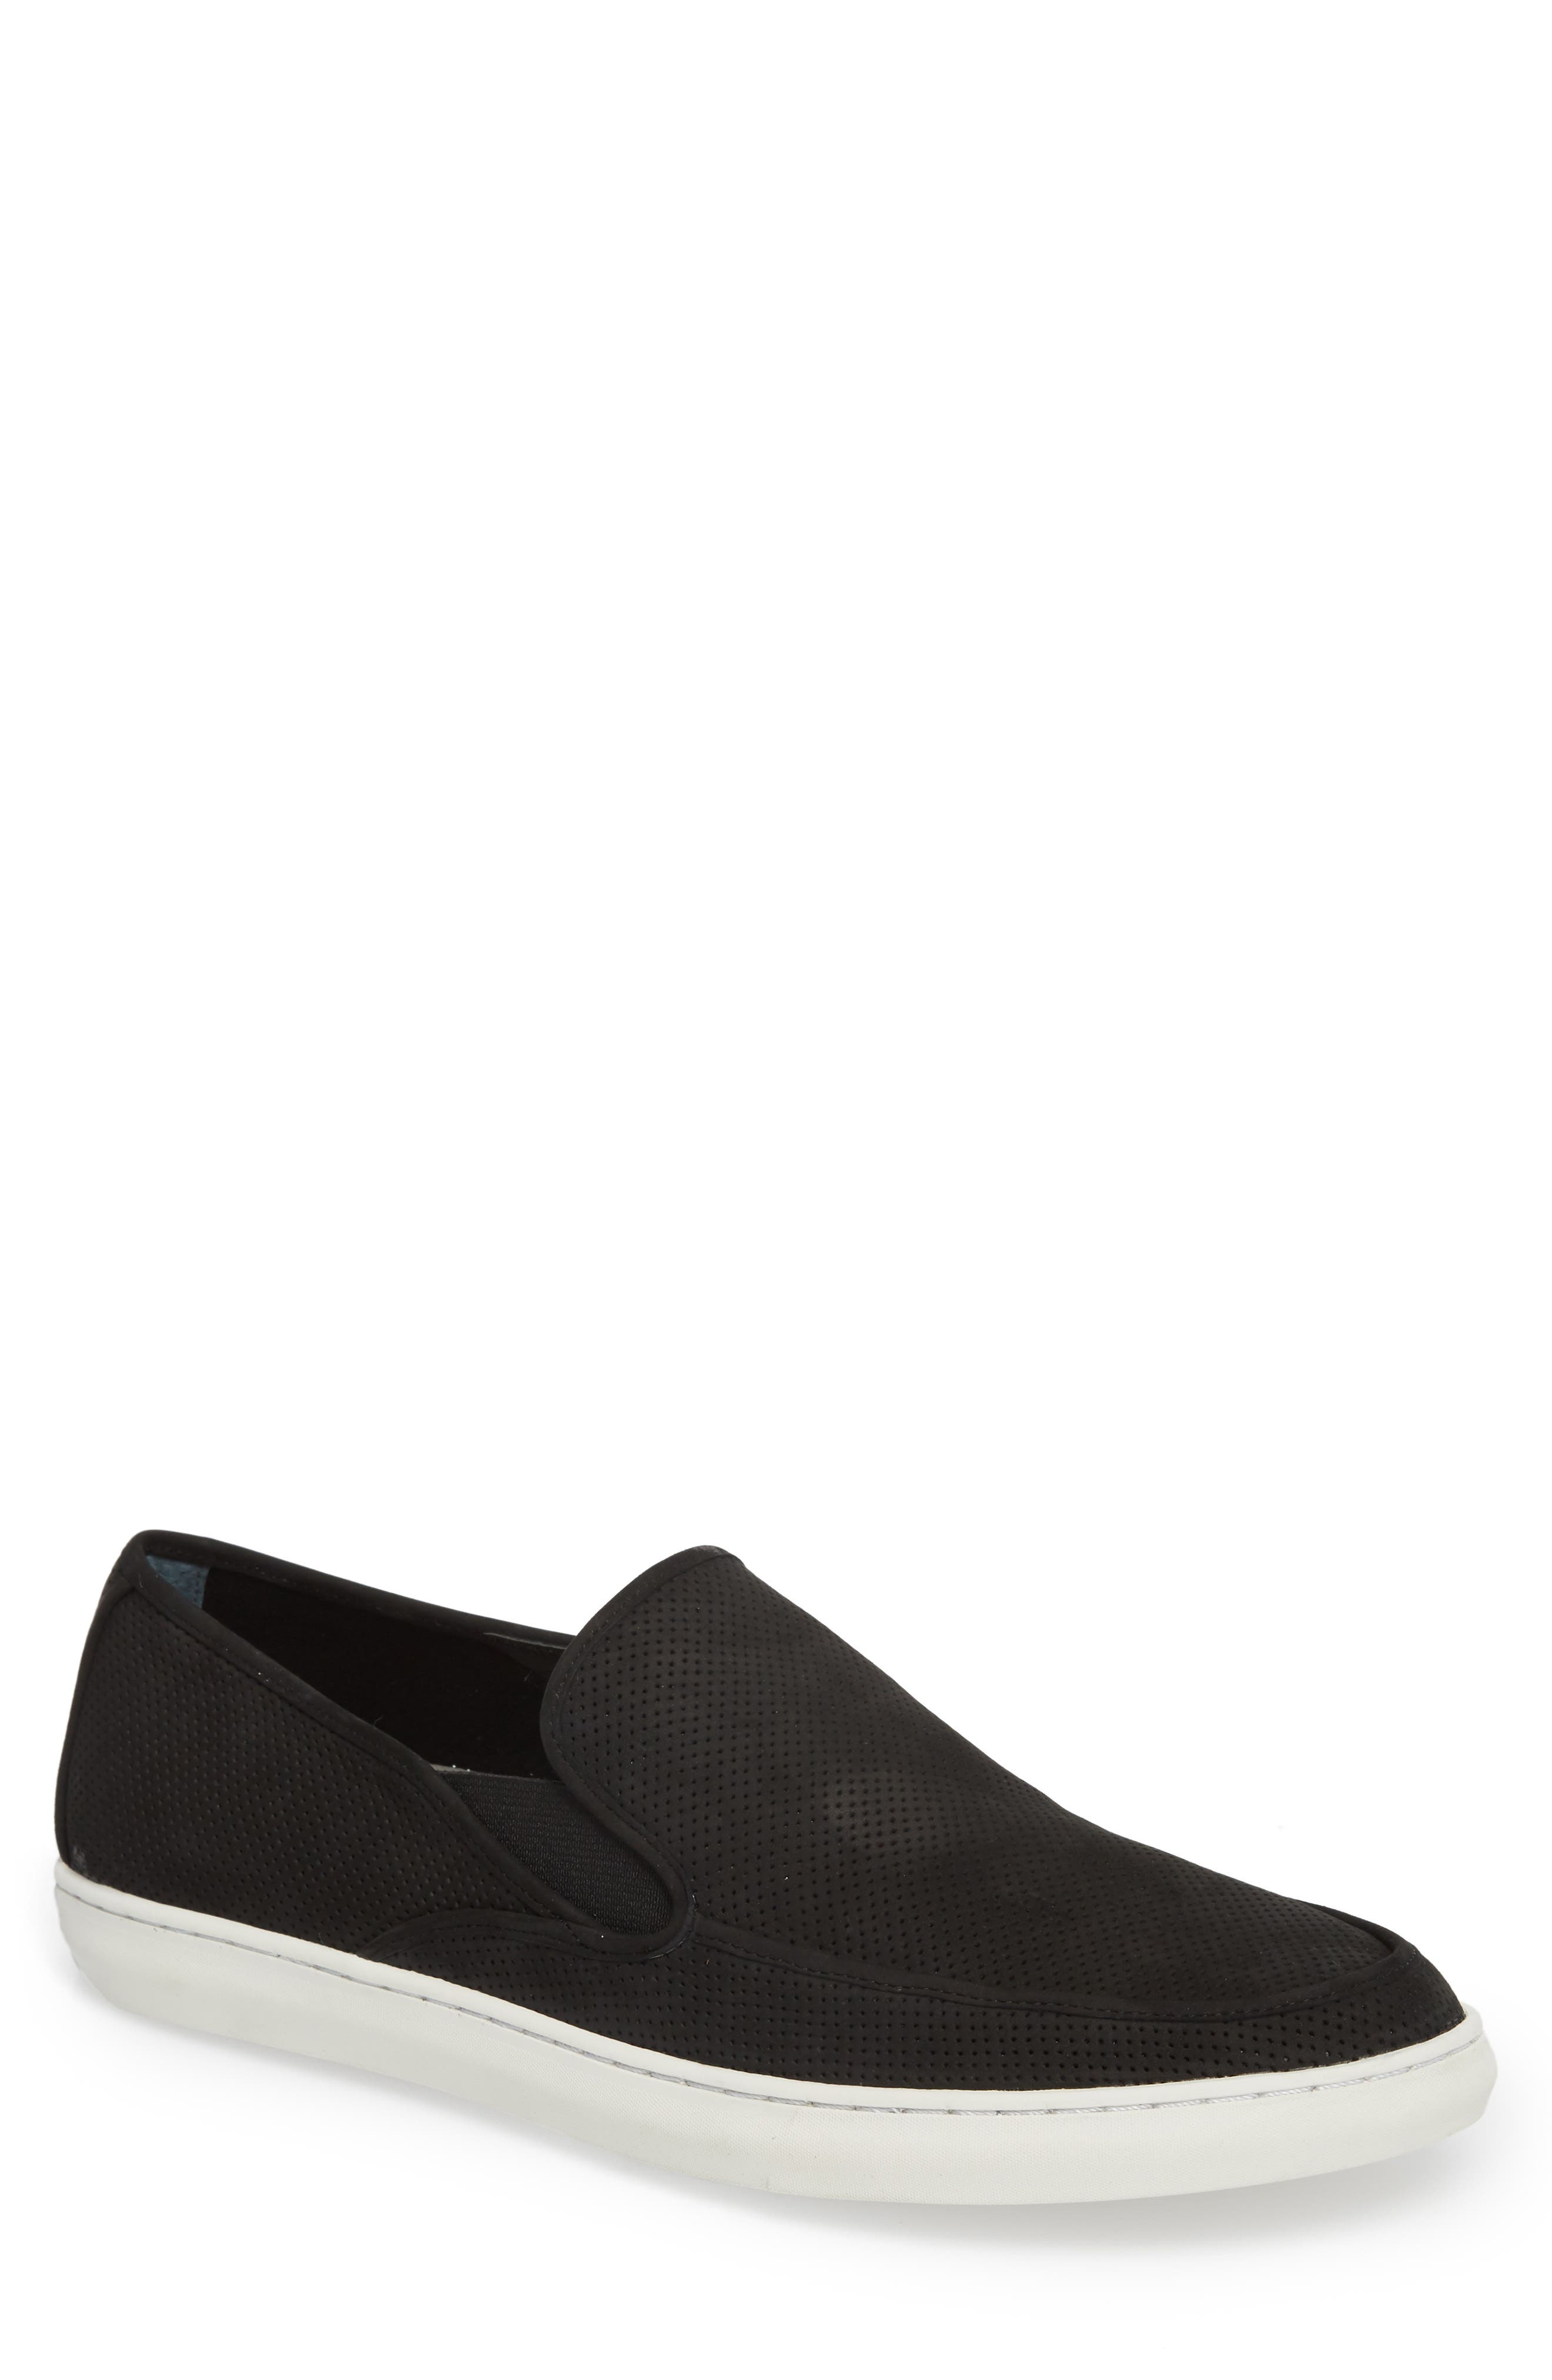 'Venice' Perforated Suede Slip-On,                             Main thumbnail 1, color,                             BLACK NUBUCK